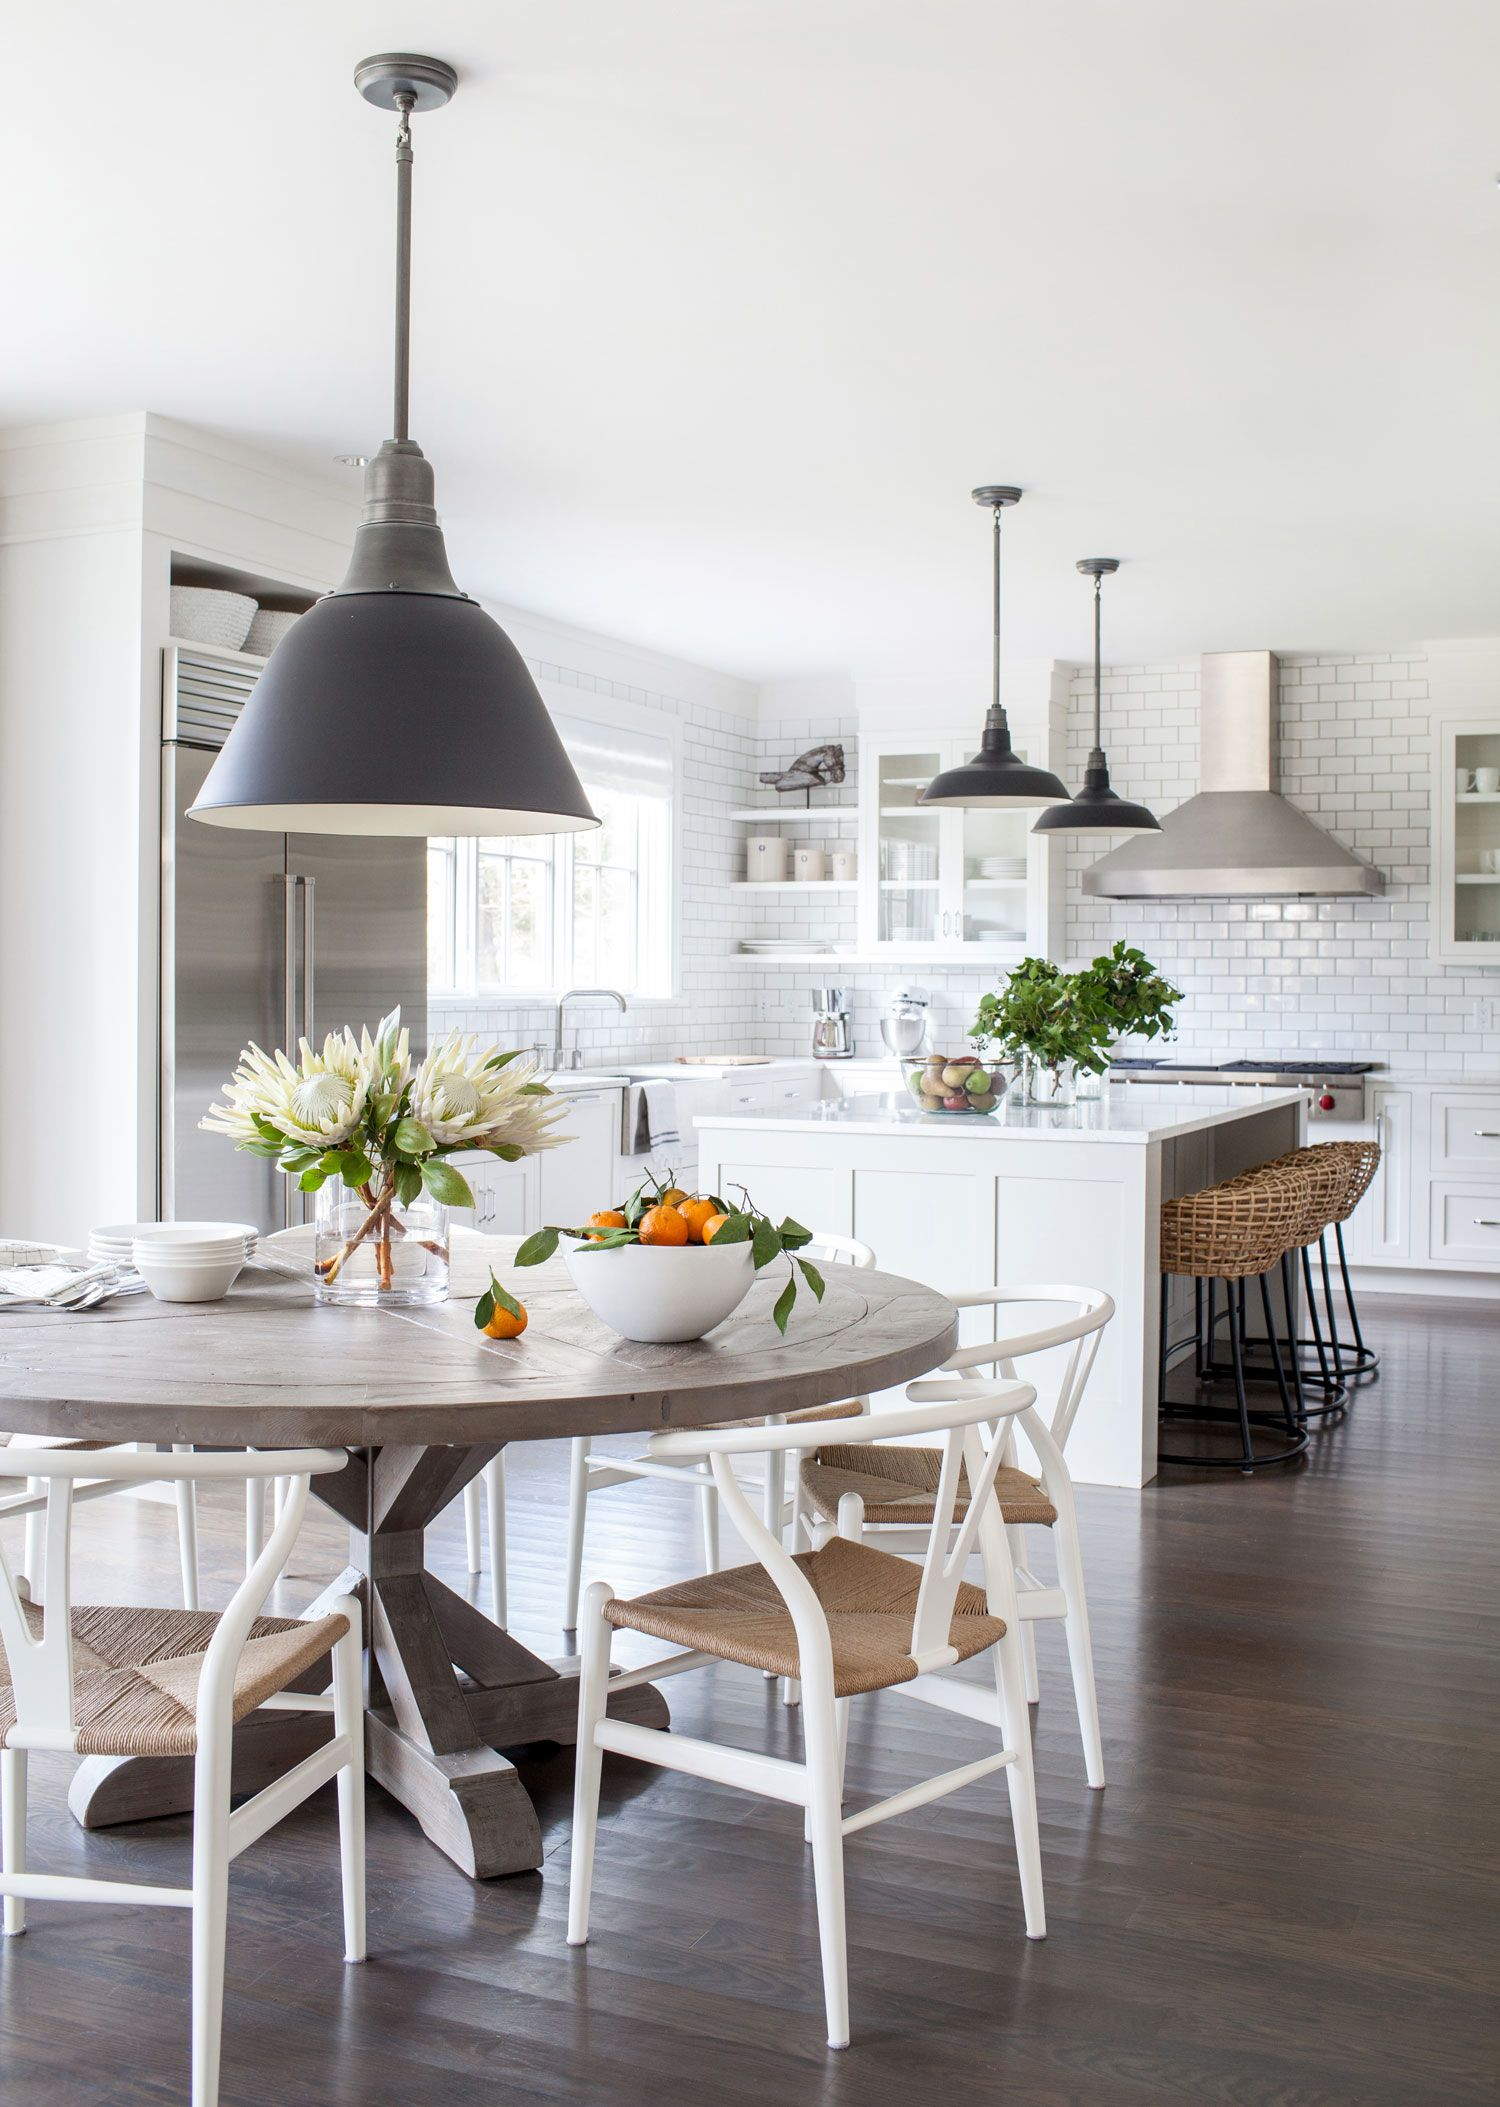 Westport Modern Farmhouse — Chango & Co.